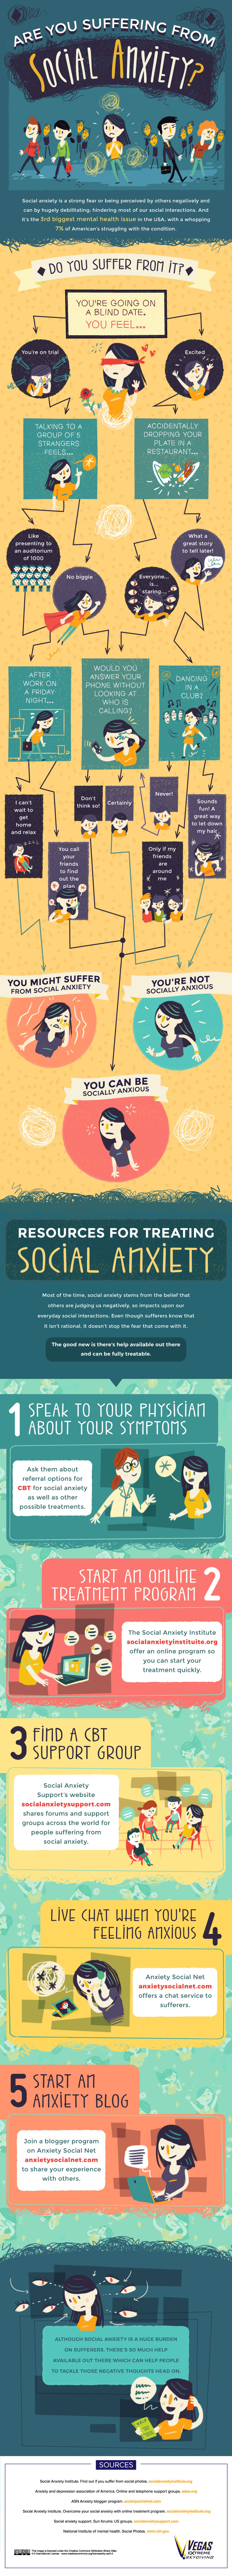 Dealing With Social Anxiety - Infographic